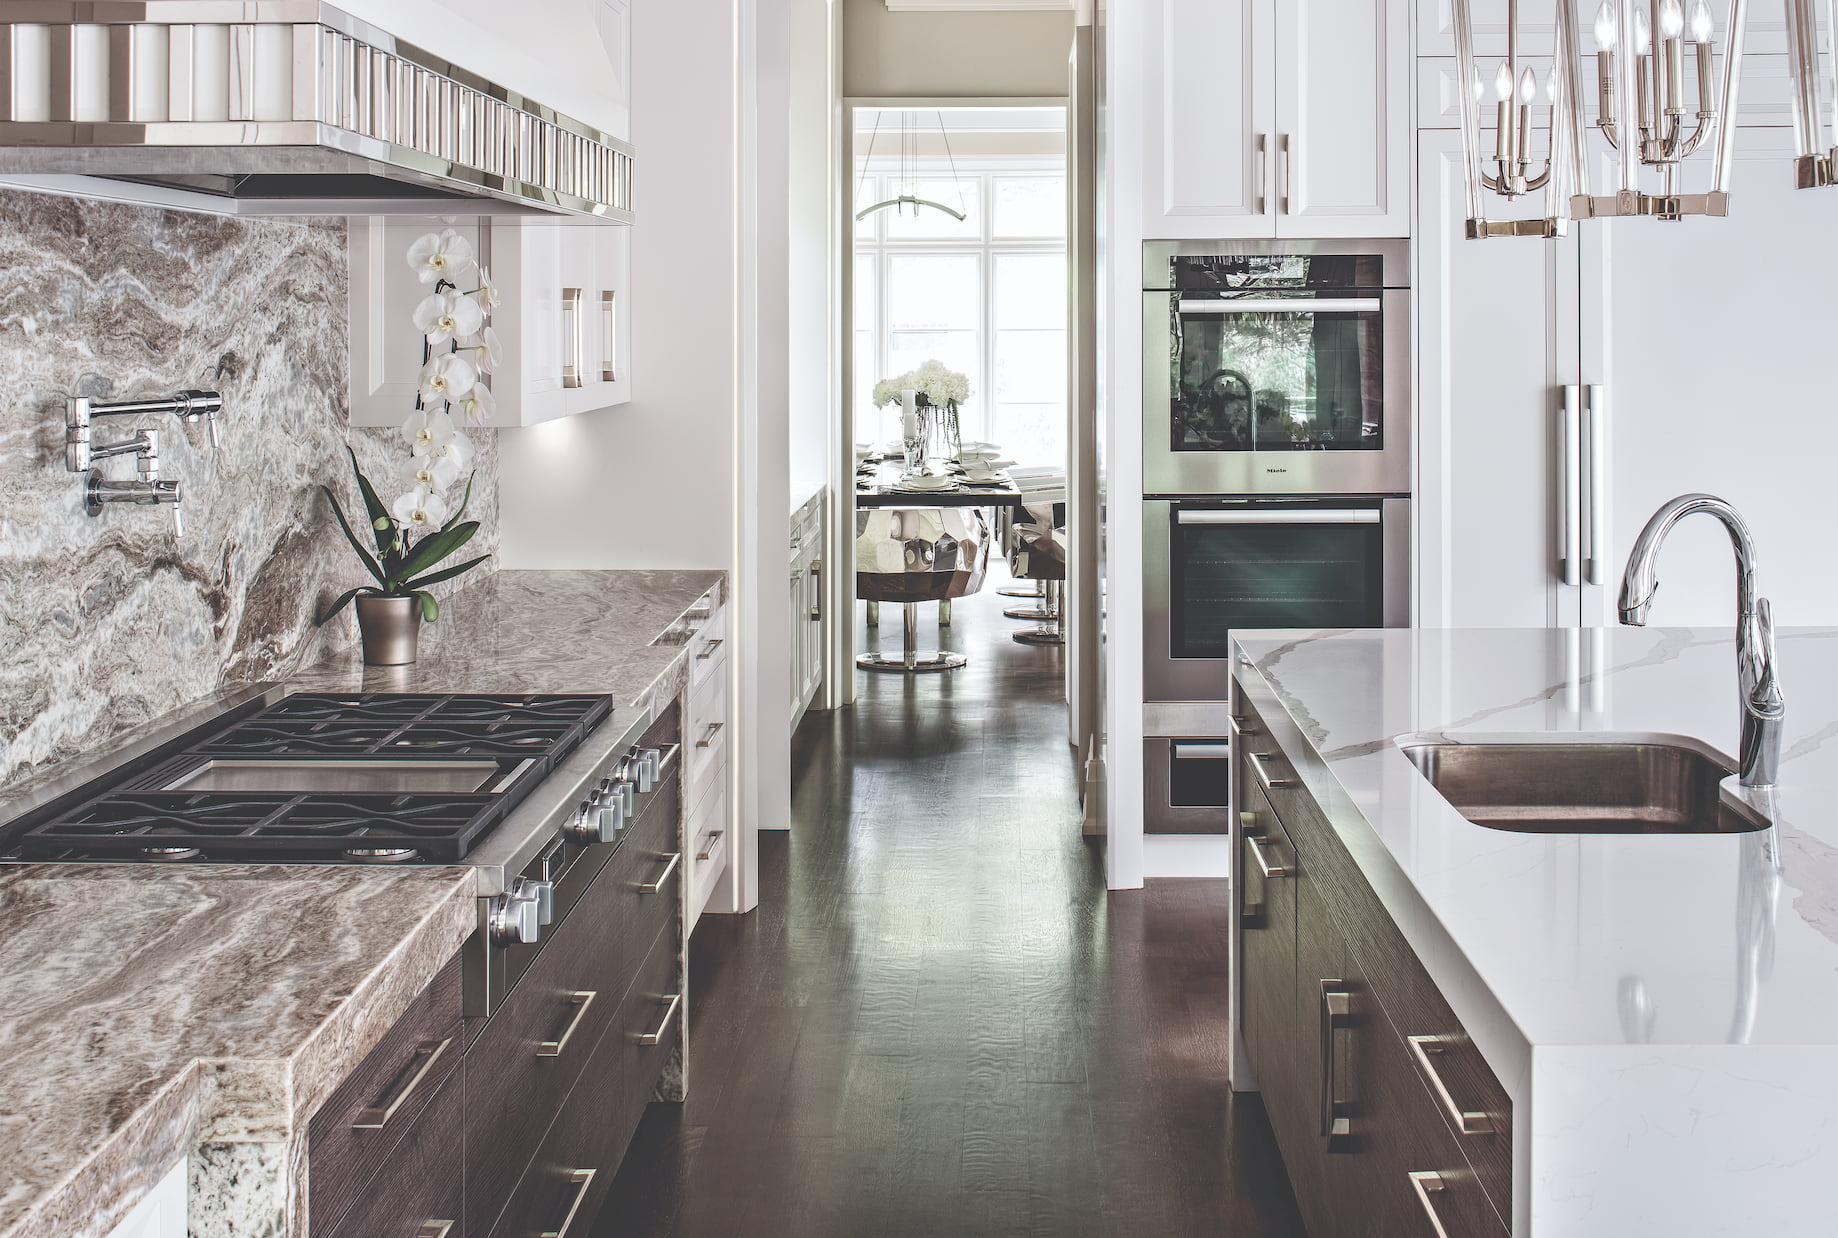 beautiful kitchens - with build in appliance and marble counter top